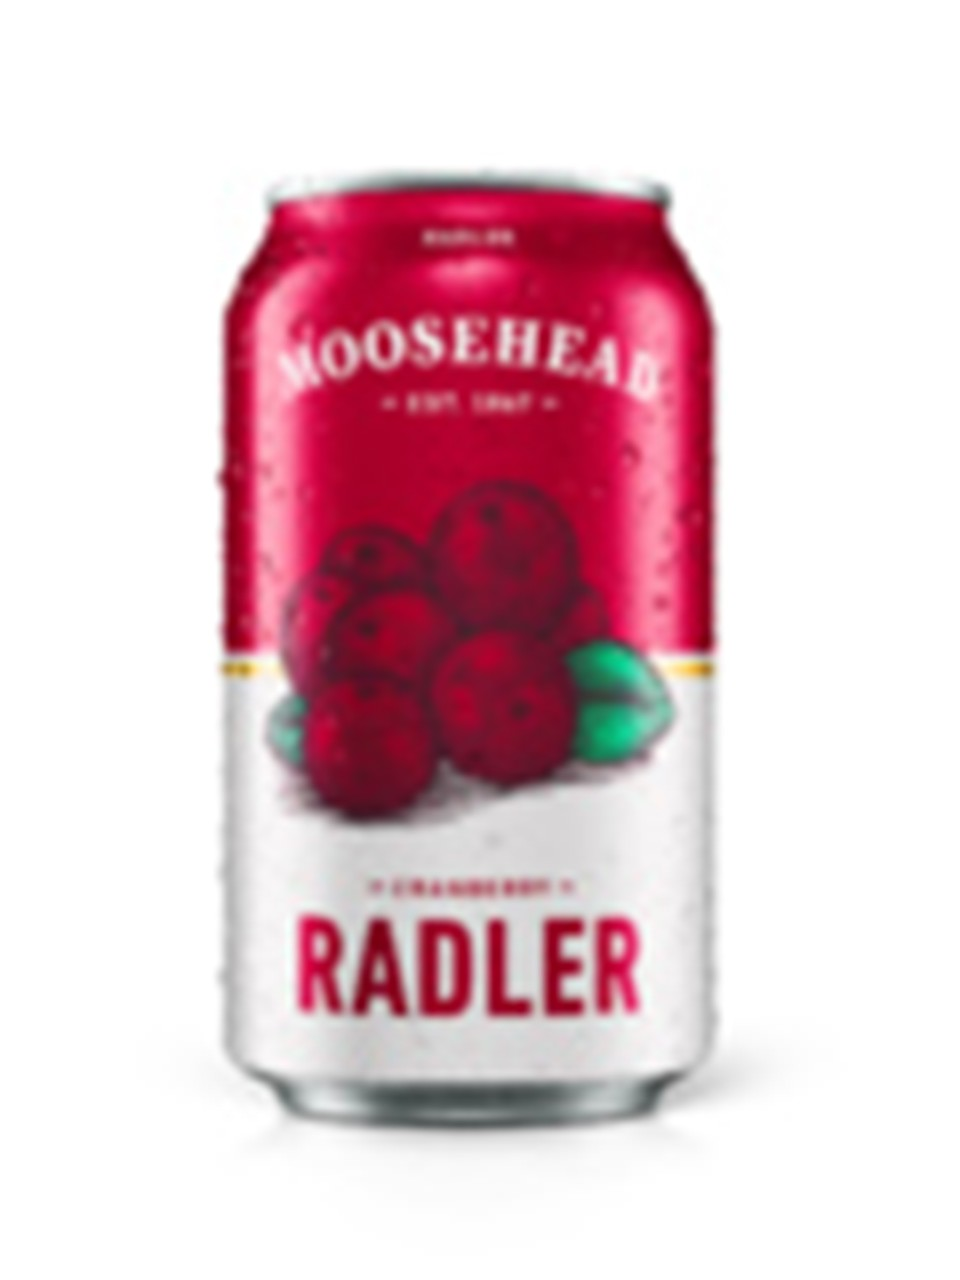 Moosehead Cranberry Radler from LCBO